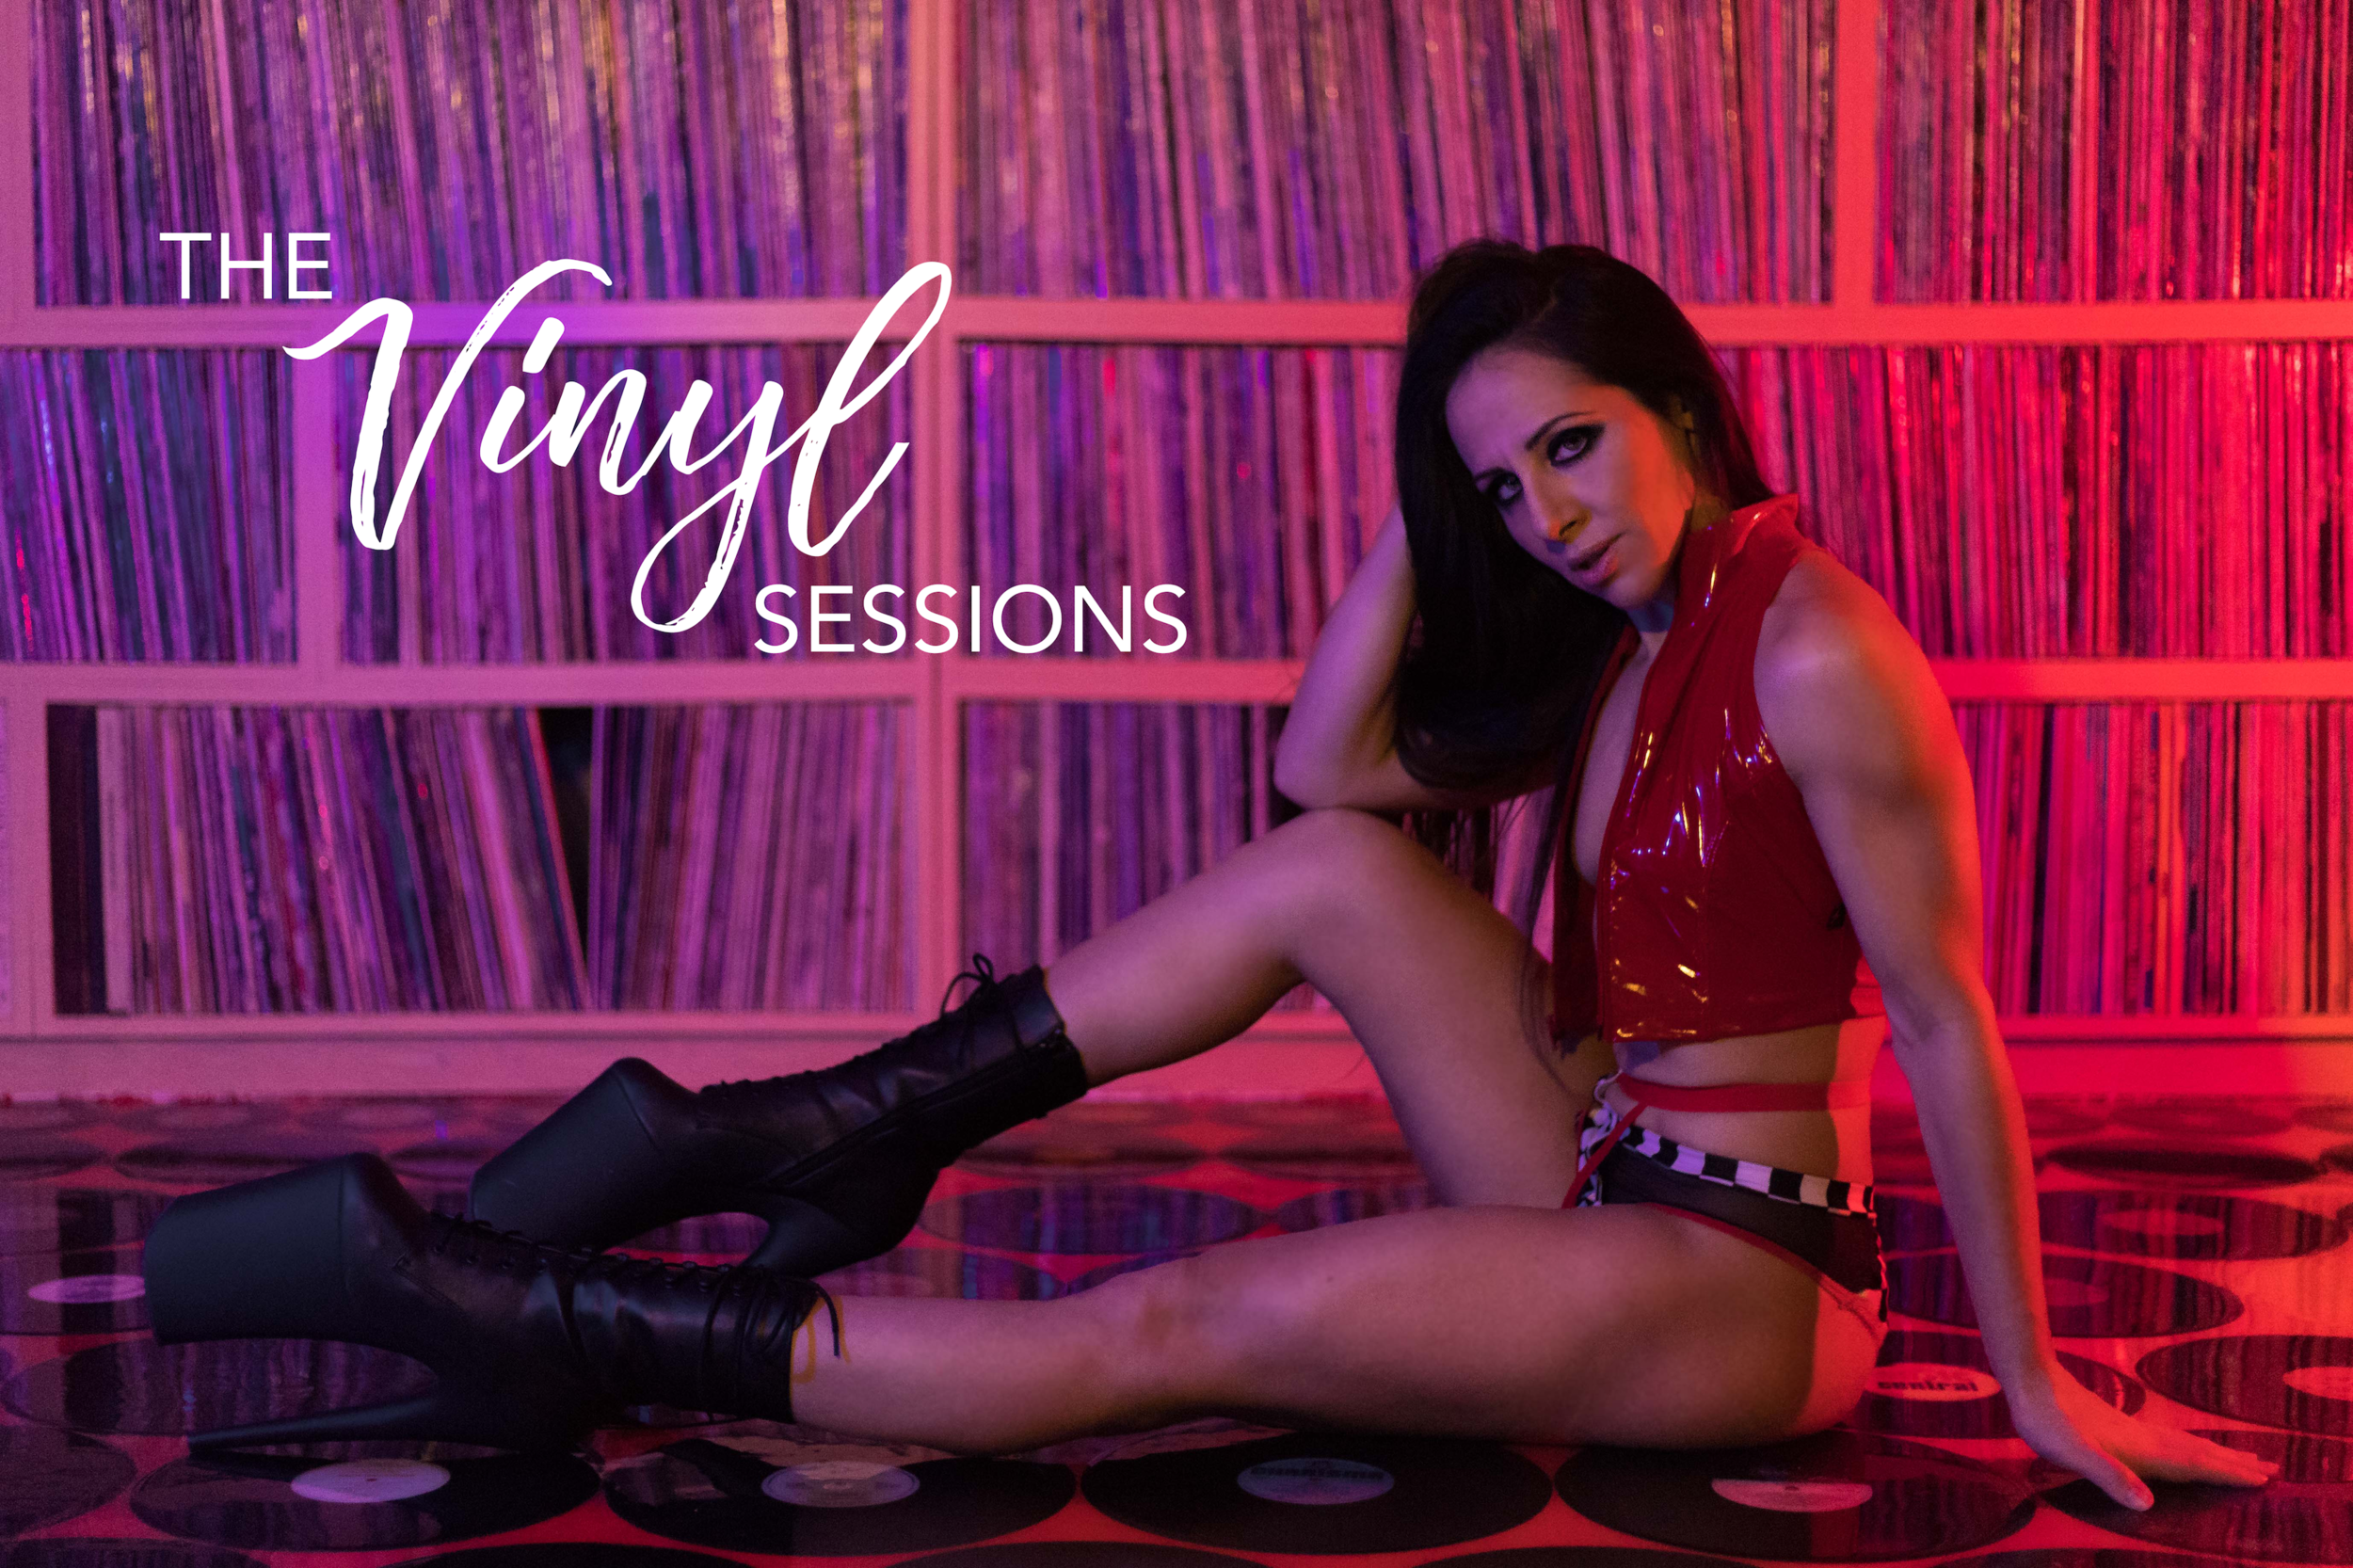 emily-soti-photography-#EmilysVinylSessions-ad1(small).png